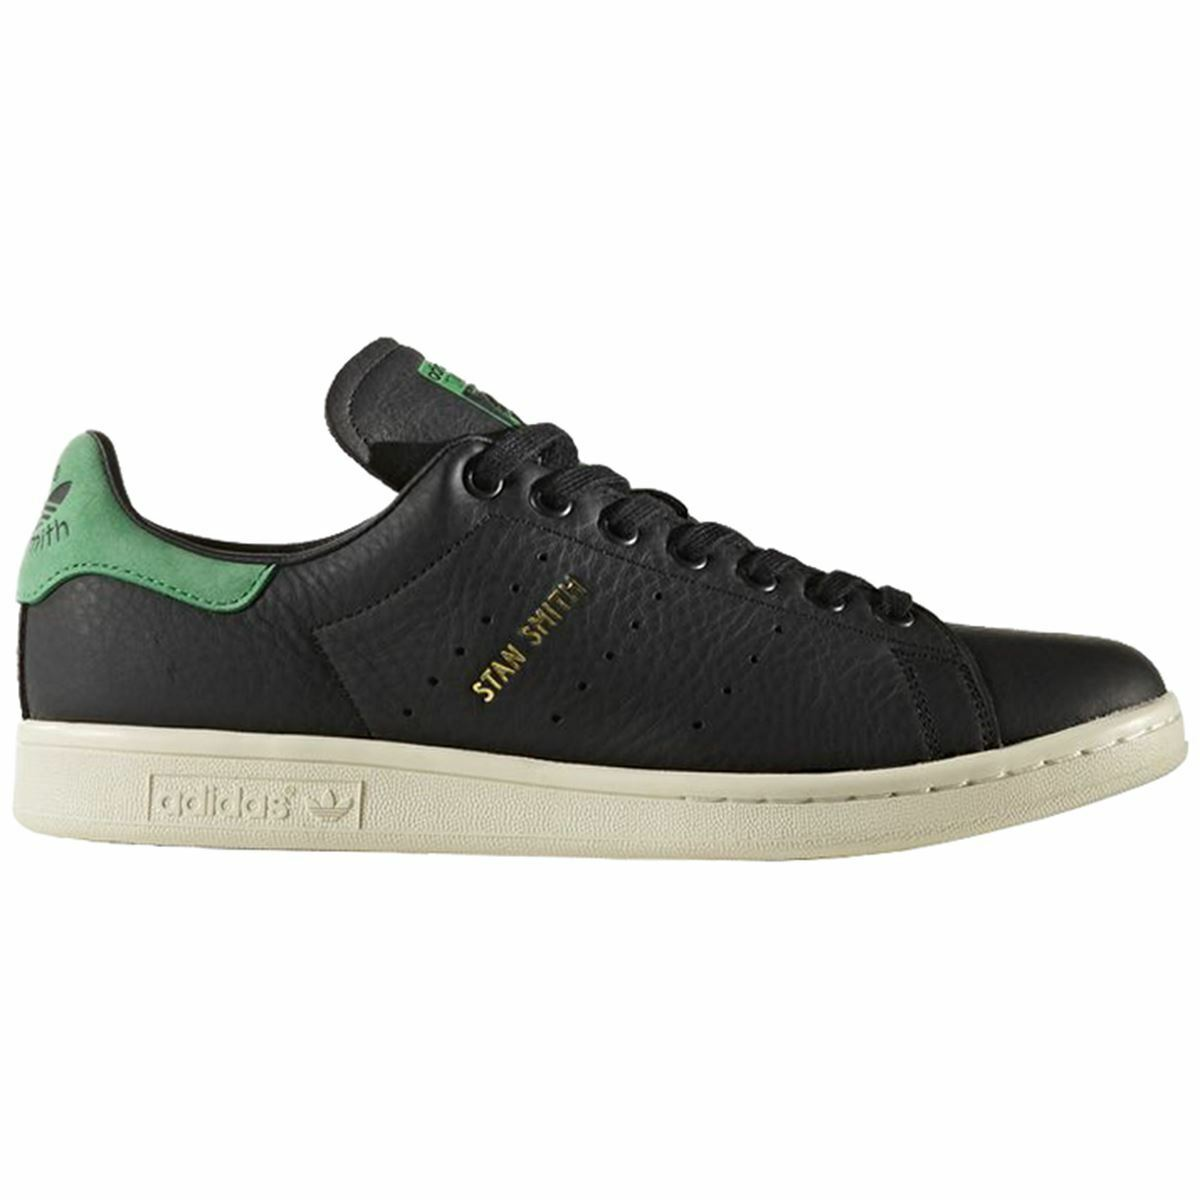 Adidas Stan Smith Core Black Mens Leather Low-top Sneakers Trainer Trainer Trainer 740e10